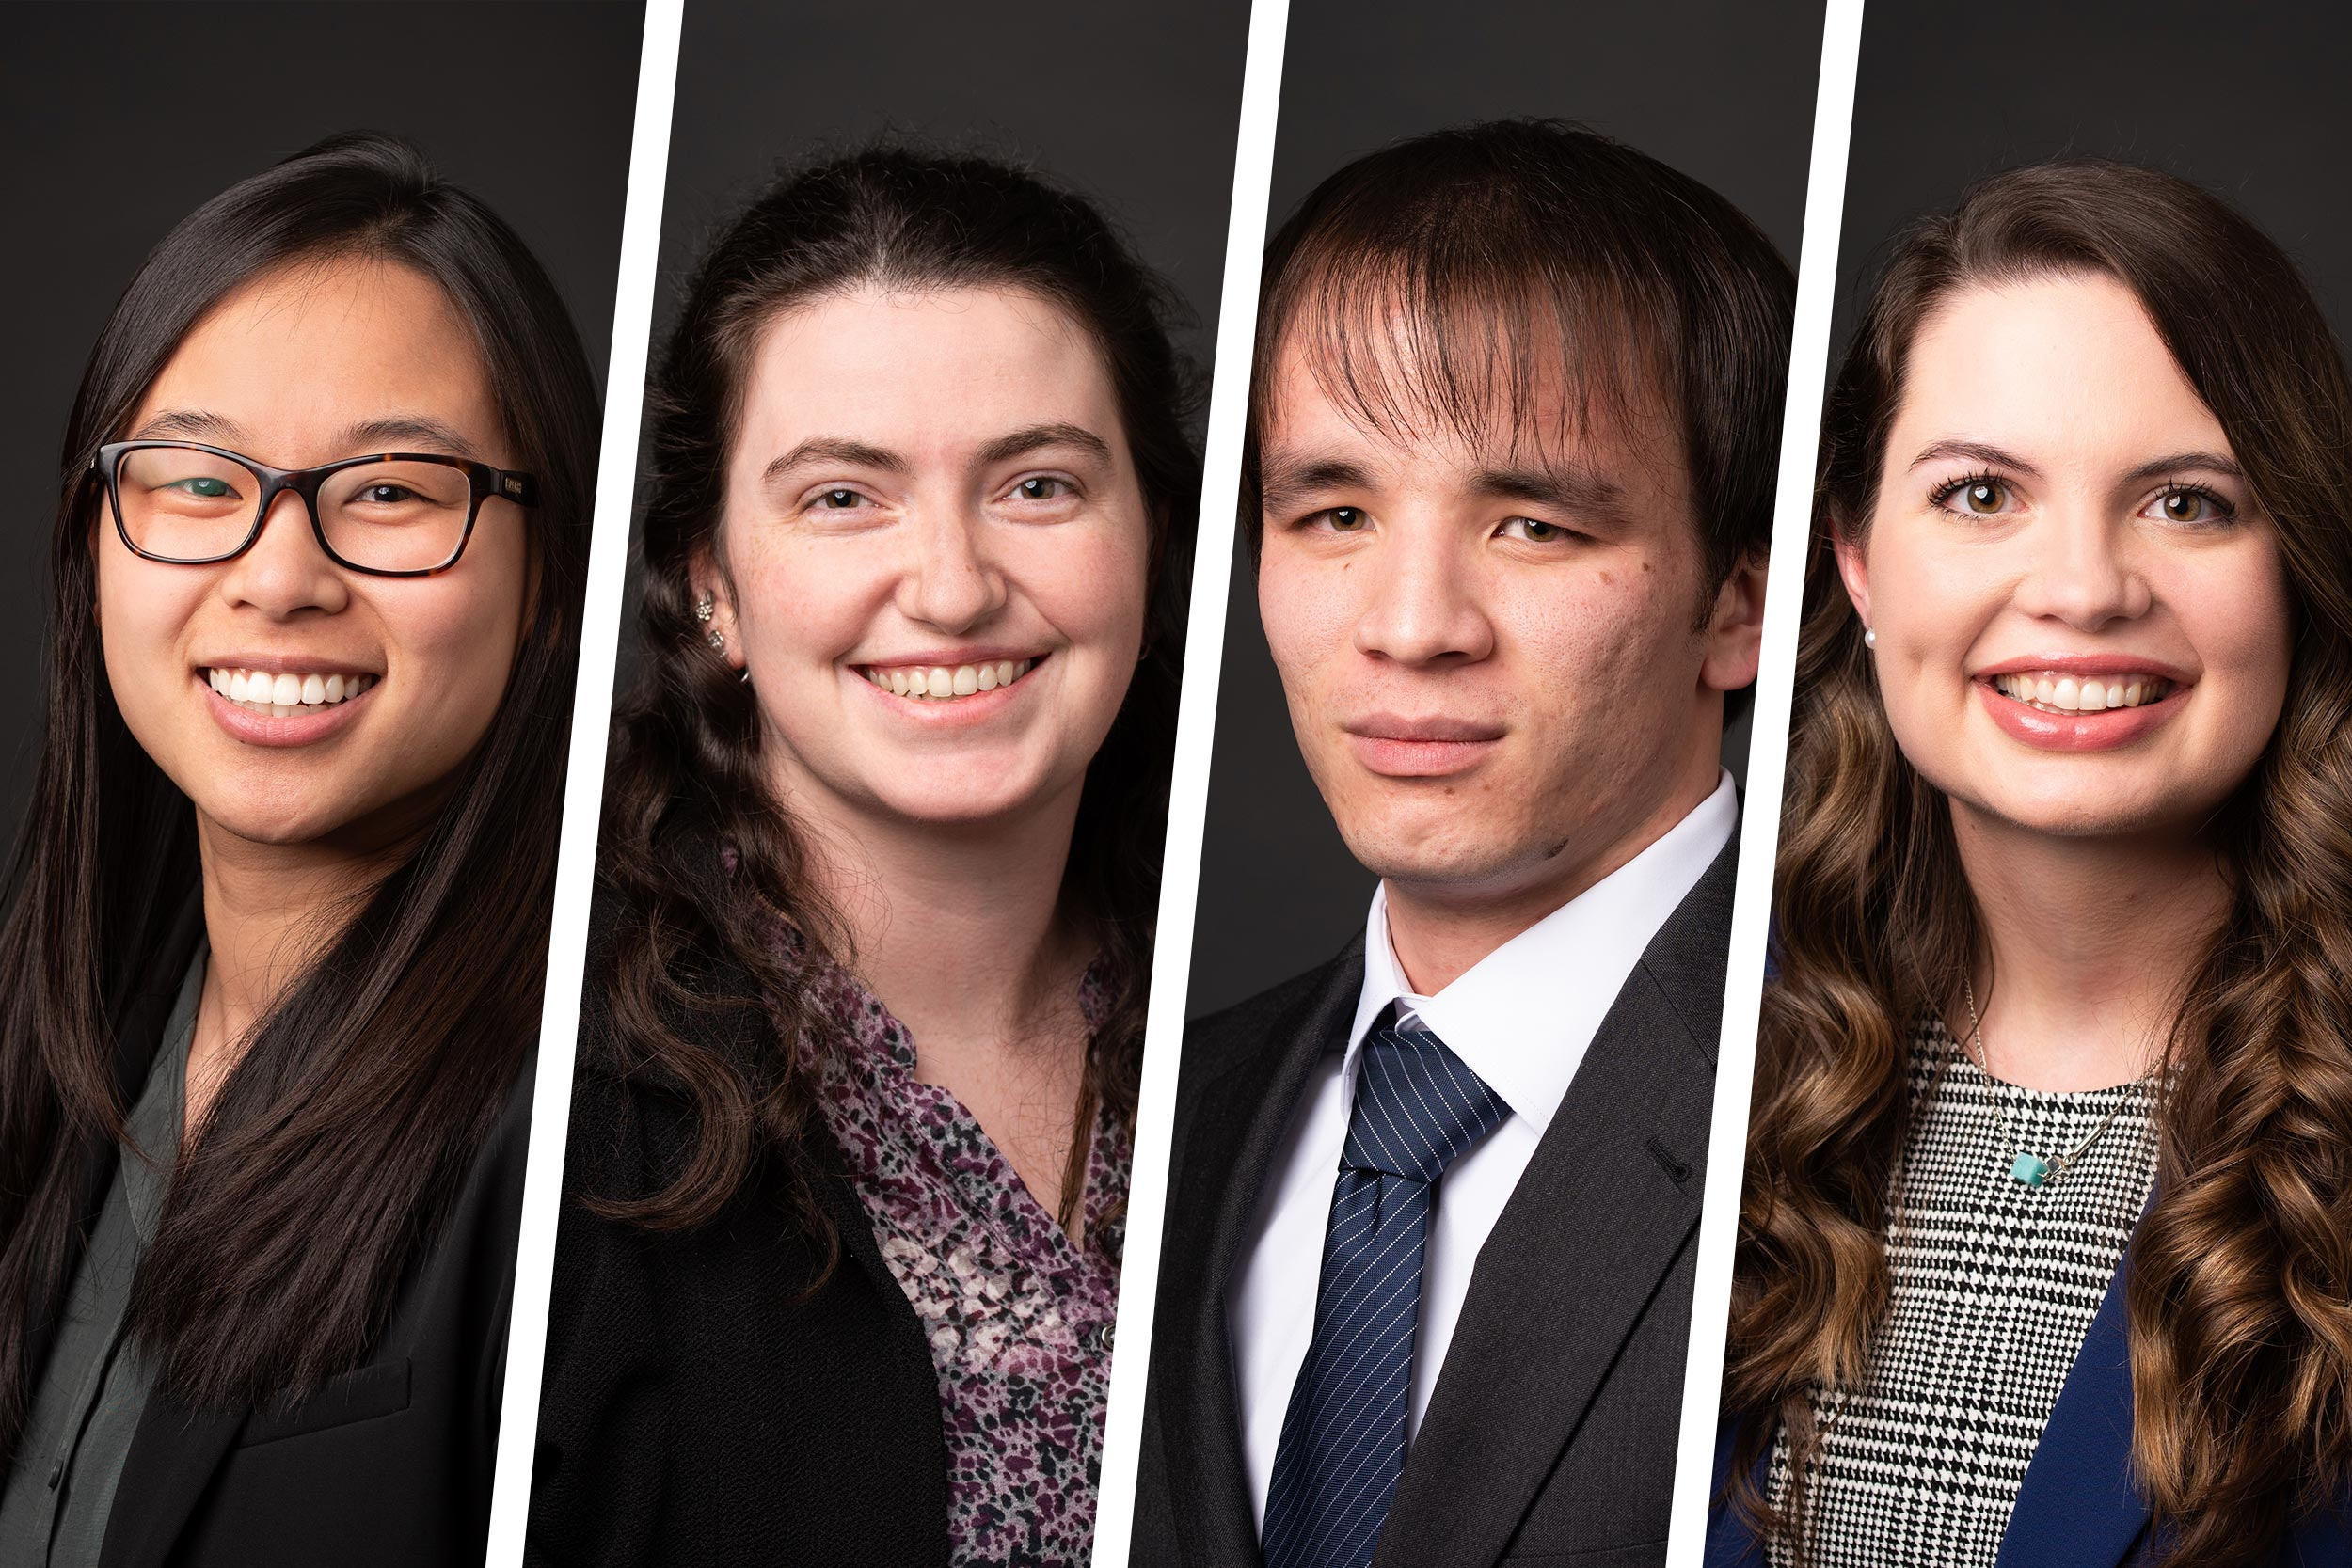 Irene Cheng, Danielle DaCrema, Chris Fu and Kassandra Grimes, are Mirzayan Fellows at the National Academies of Sciences, Engineering and Medicine.